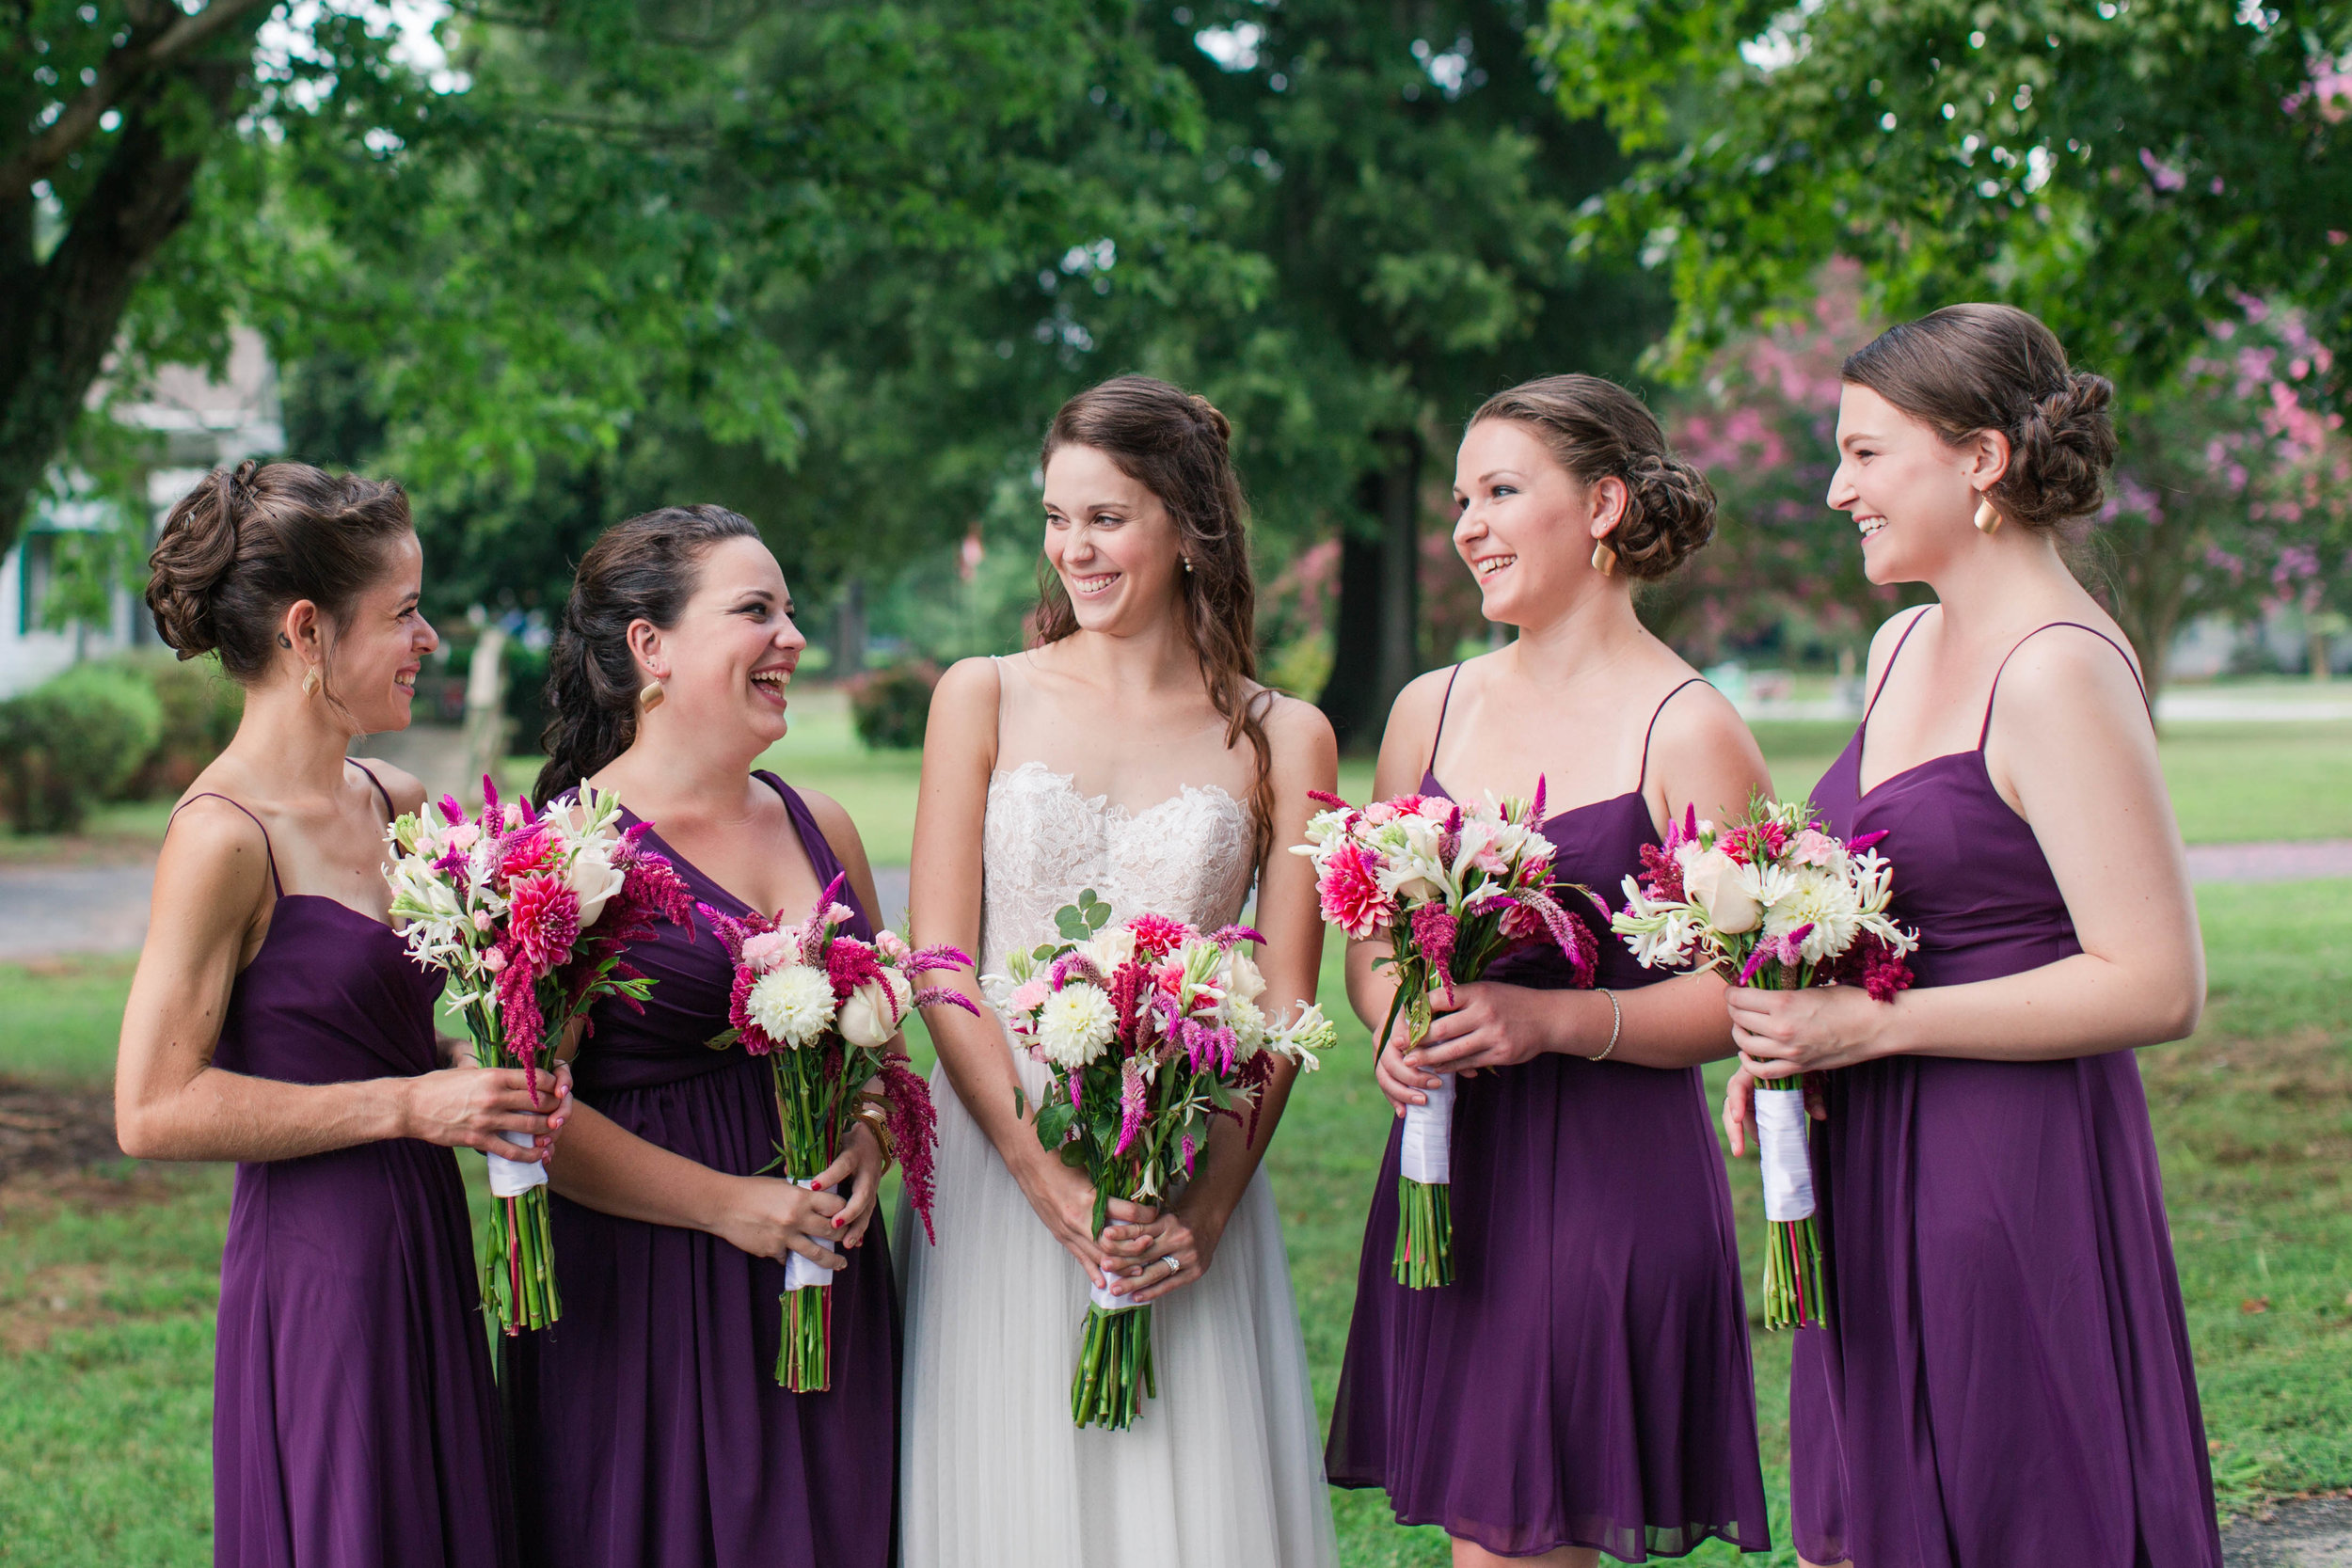 Amato_Family and Bridal Party_119.jpg